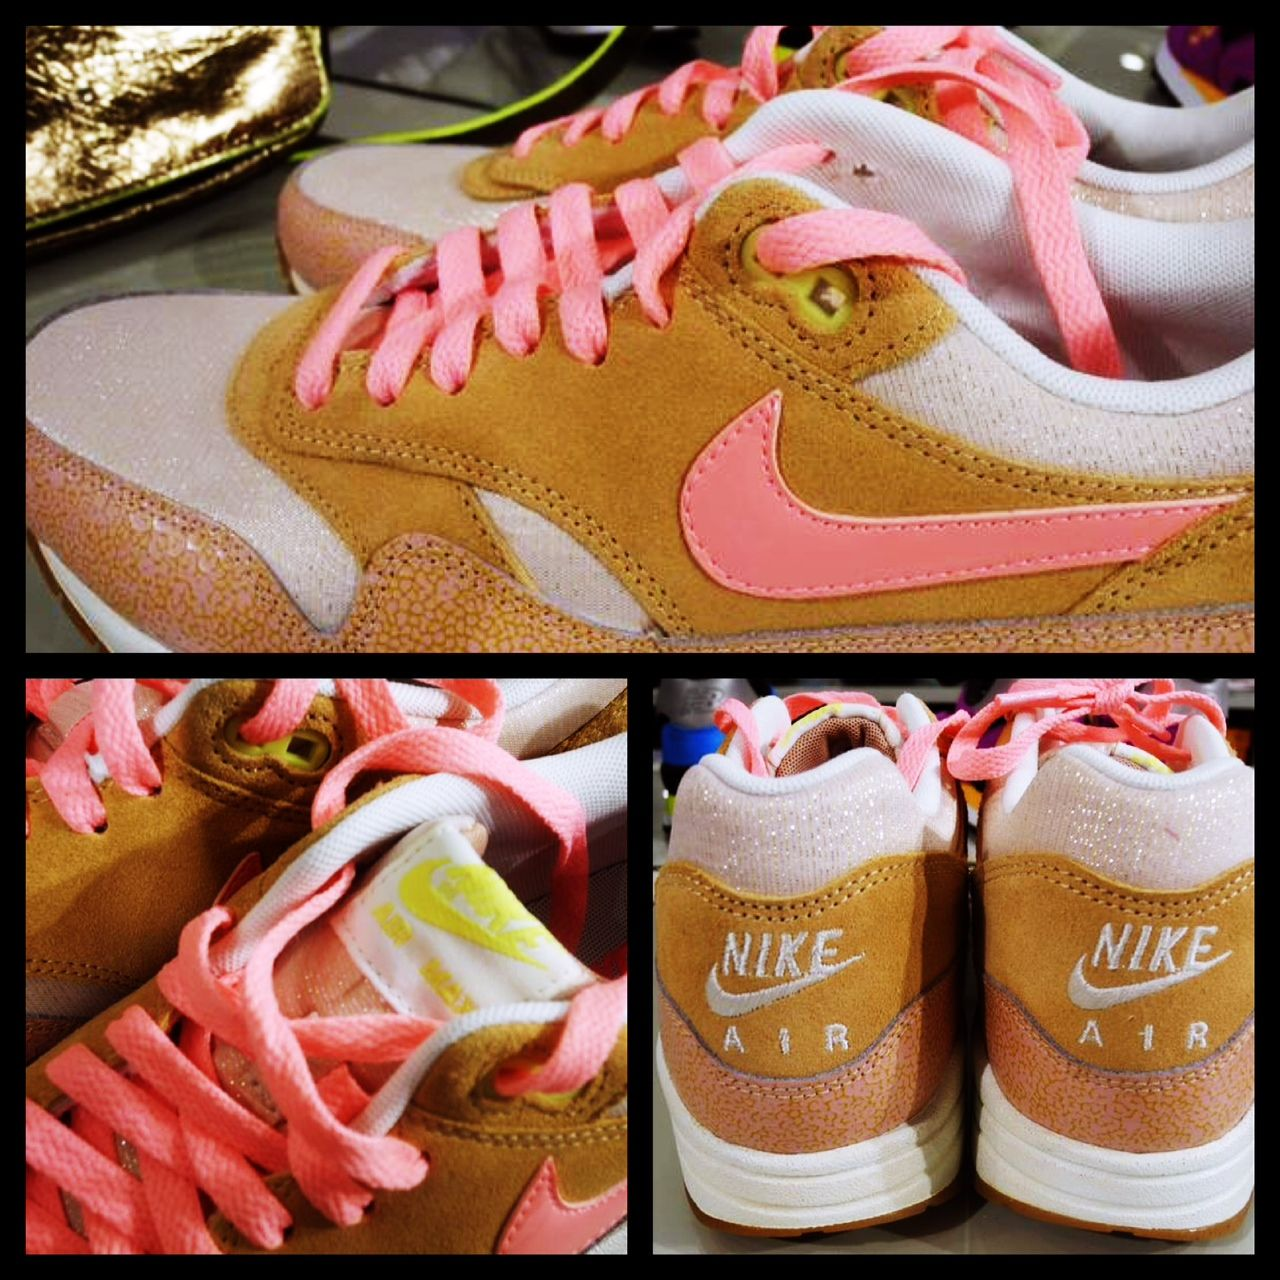 Rosa Entdeckt Your Life Fashion Trendhouse Im Up In Air Max Nike zU15wxnq